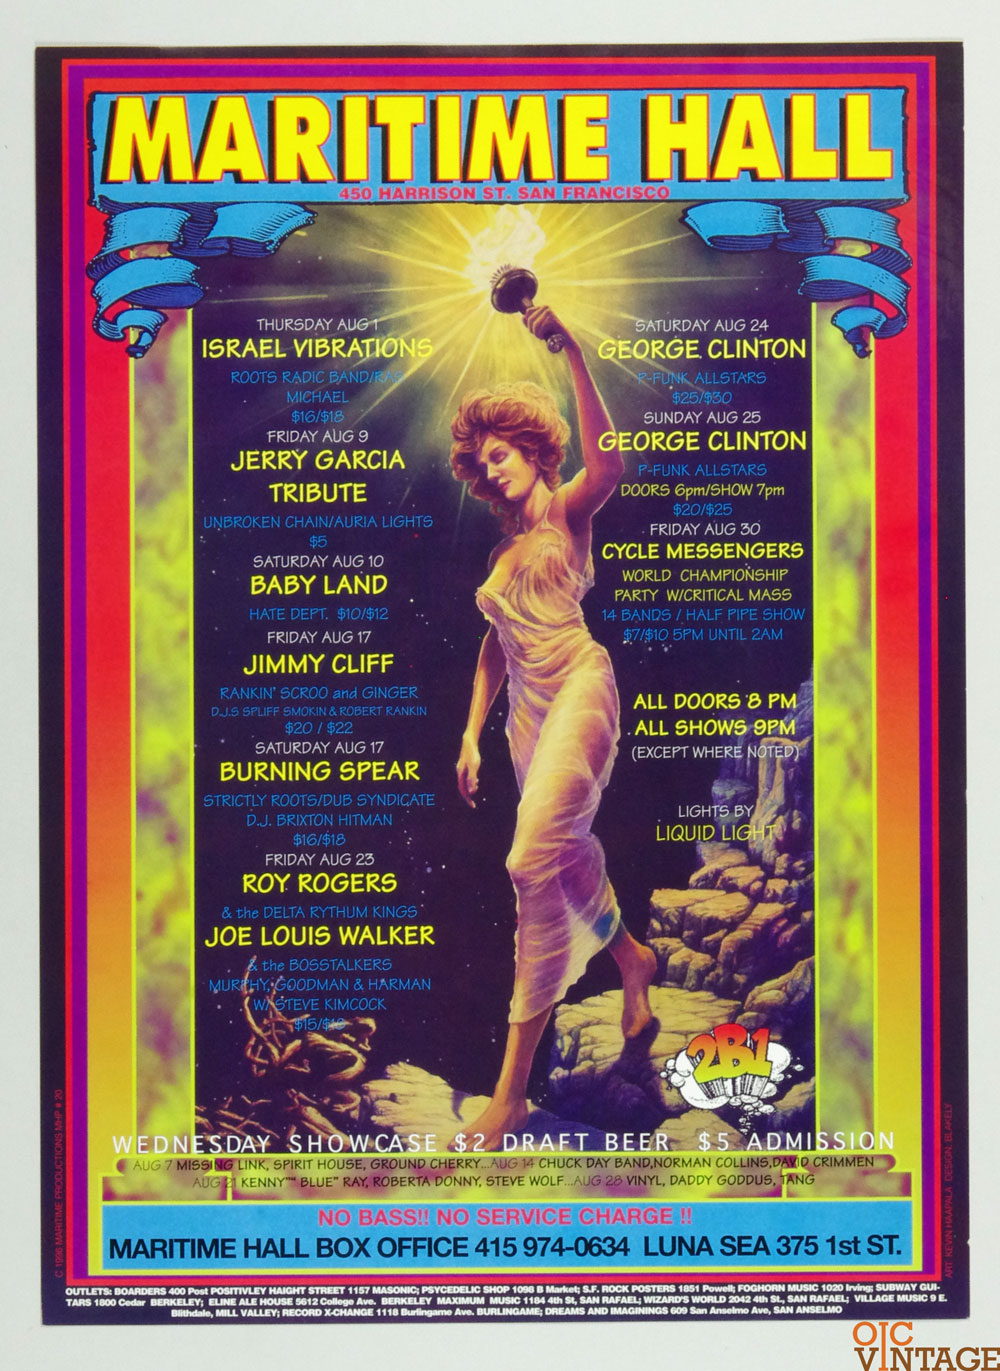 Maritime Hall 1996 Aug Poster Jerry Garcia Tribute George Clinton